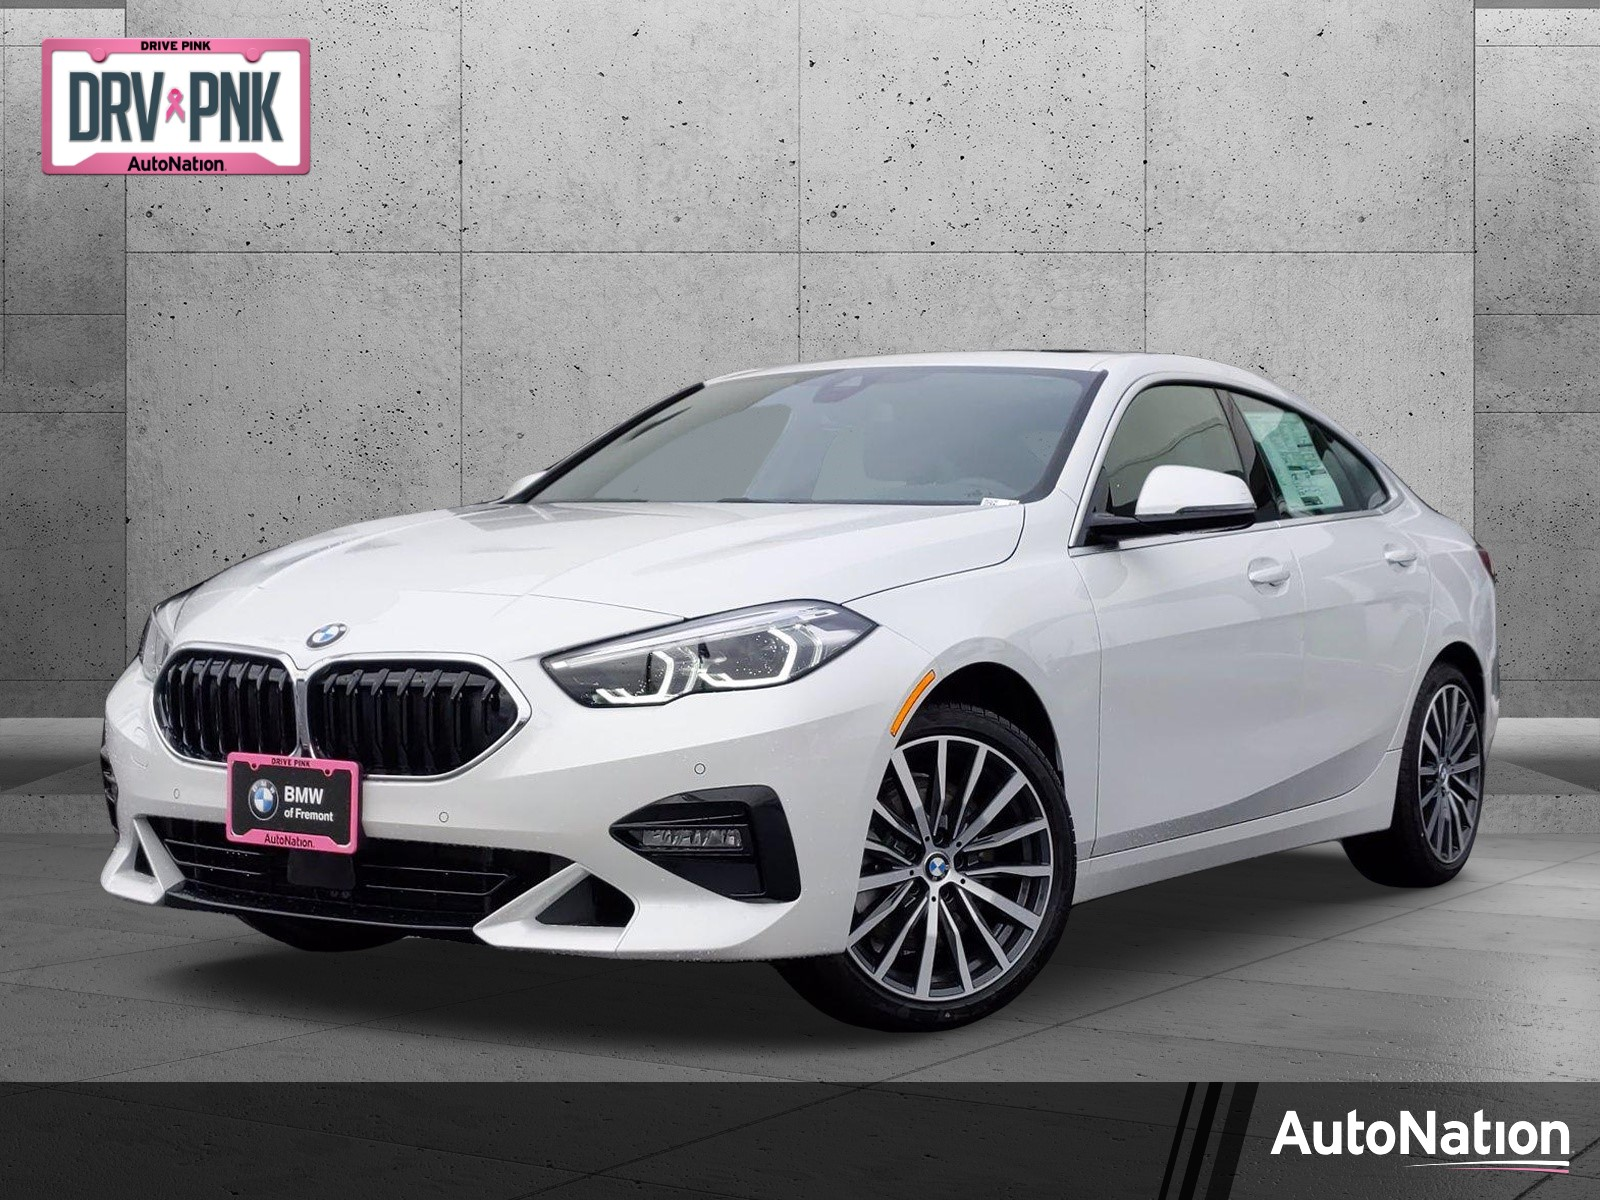 New Bmw Cars Savs For Sale In Fremont Ca New Inventory